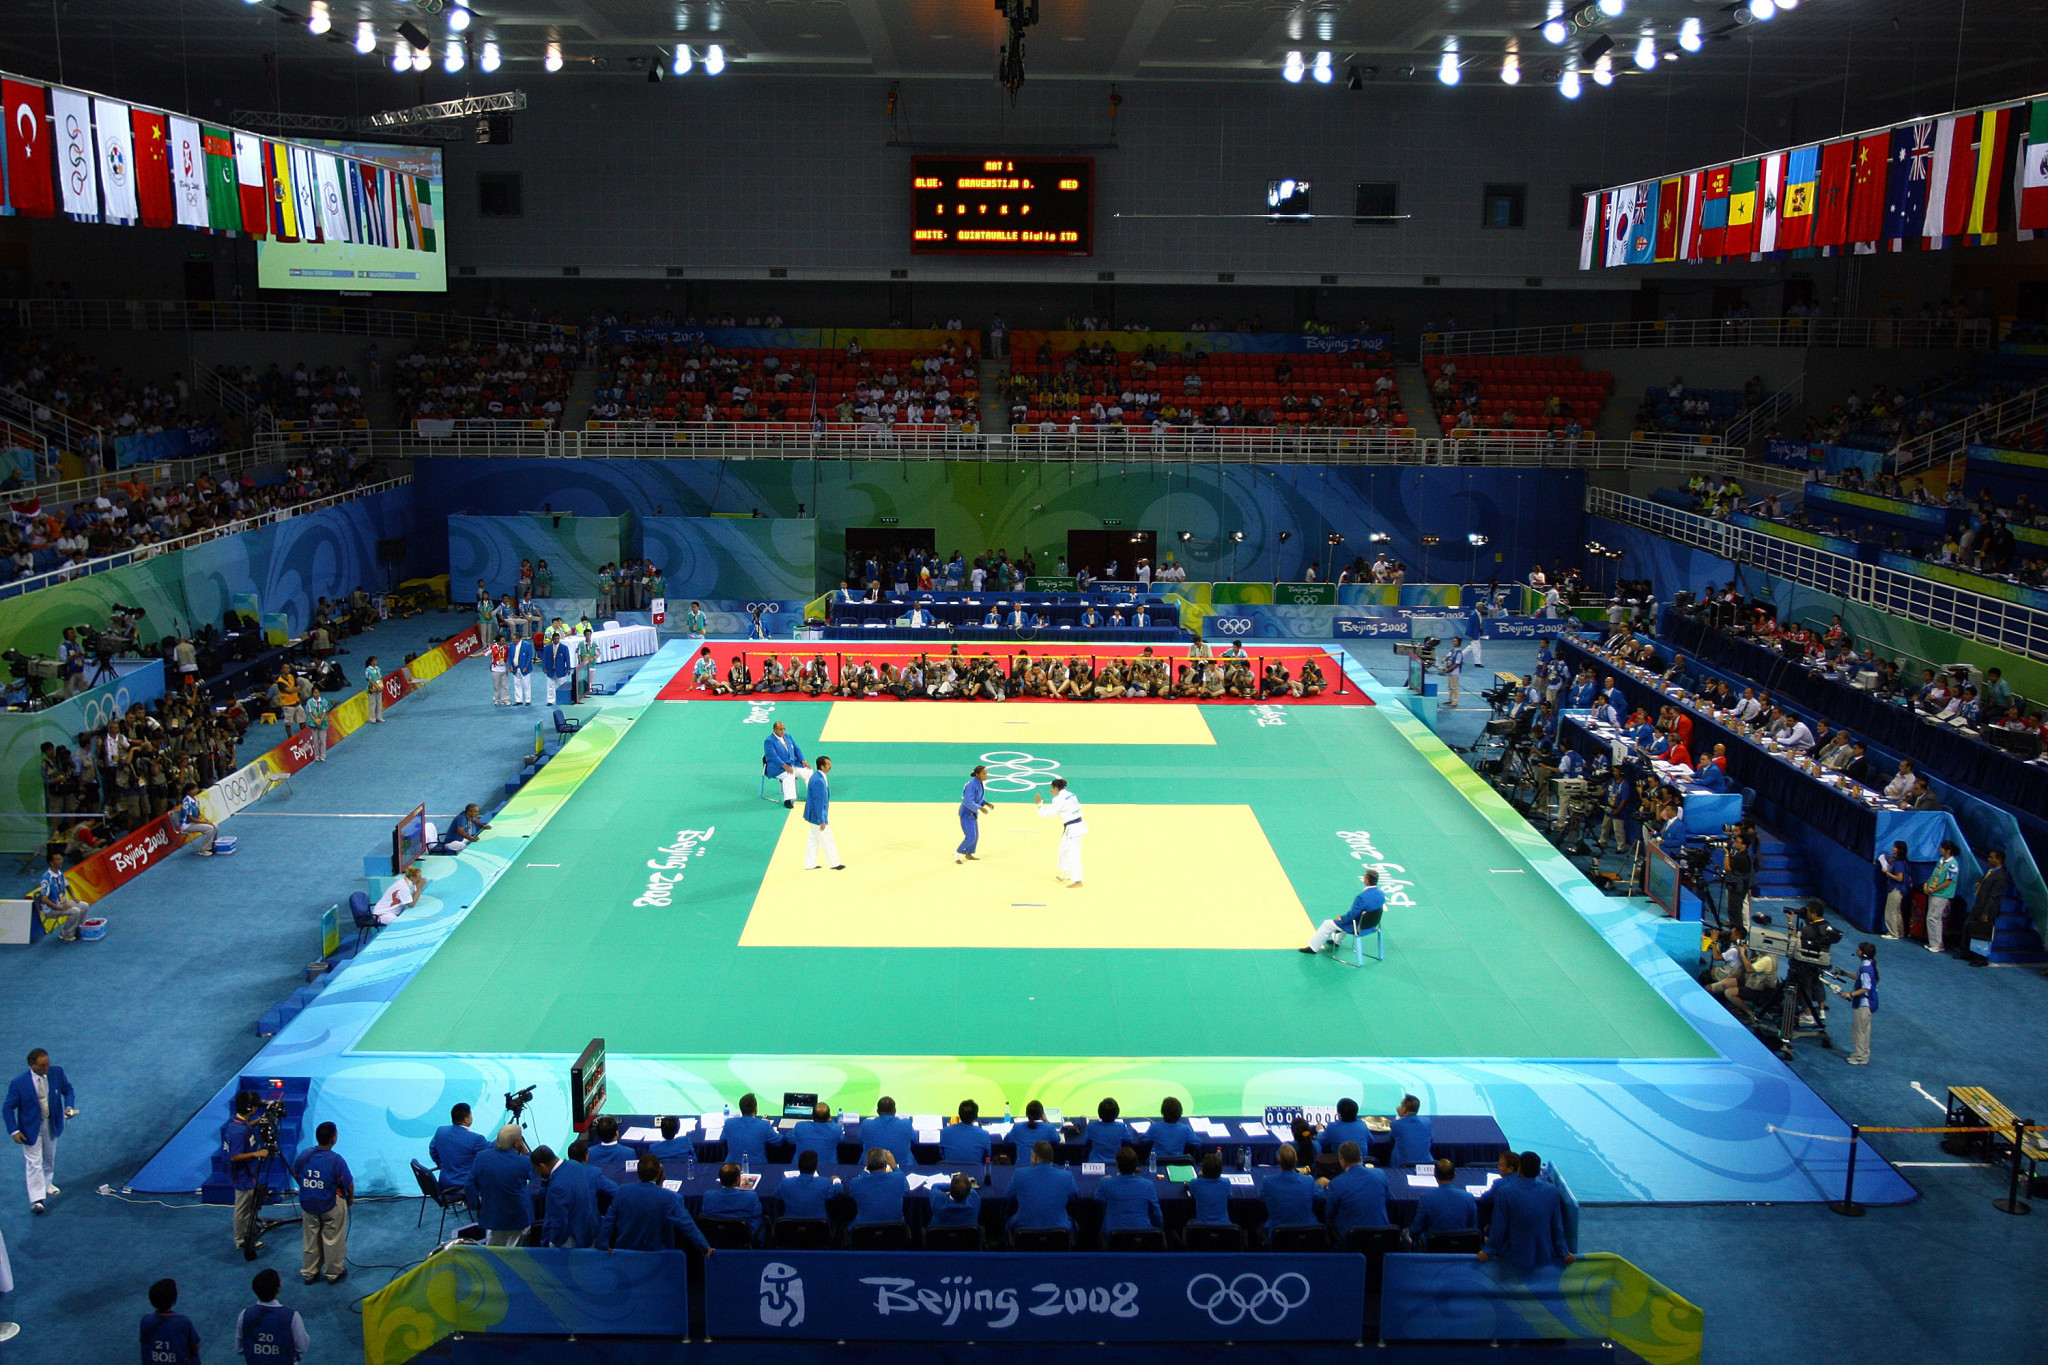 Maria Pekli (white) of Australia fights against Ketleyn Quadros of Brazil during the Women's 57 kg Judo event at the University of Science and Technology Beijing Gymnasium on Day 3 of the Beijing 2008 Olympic Games ©Getty Images